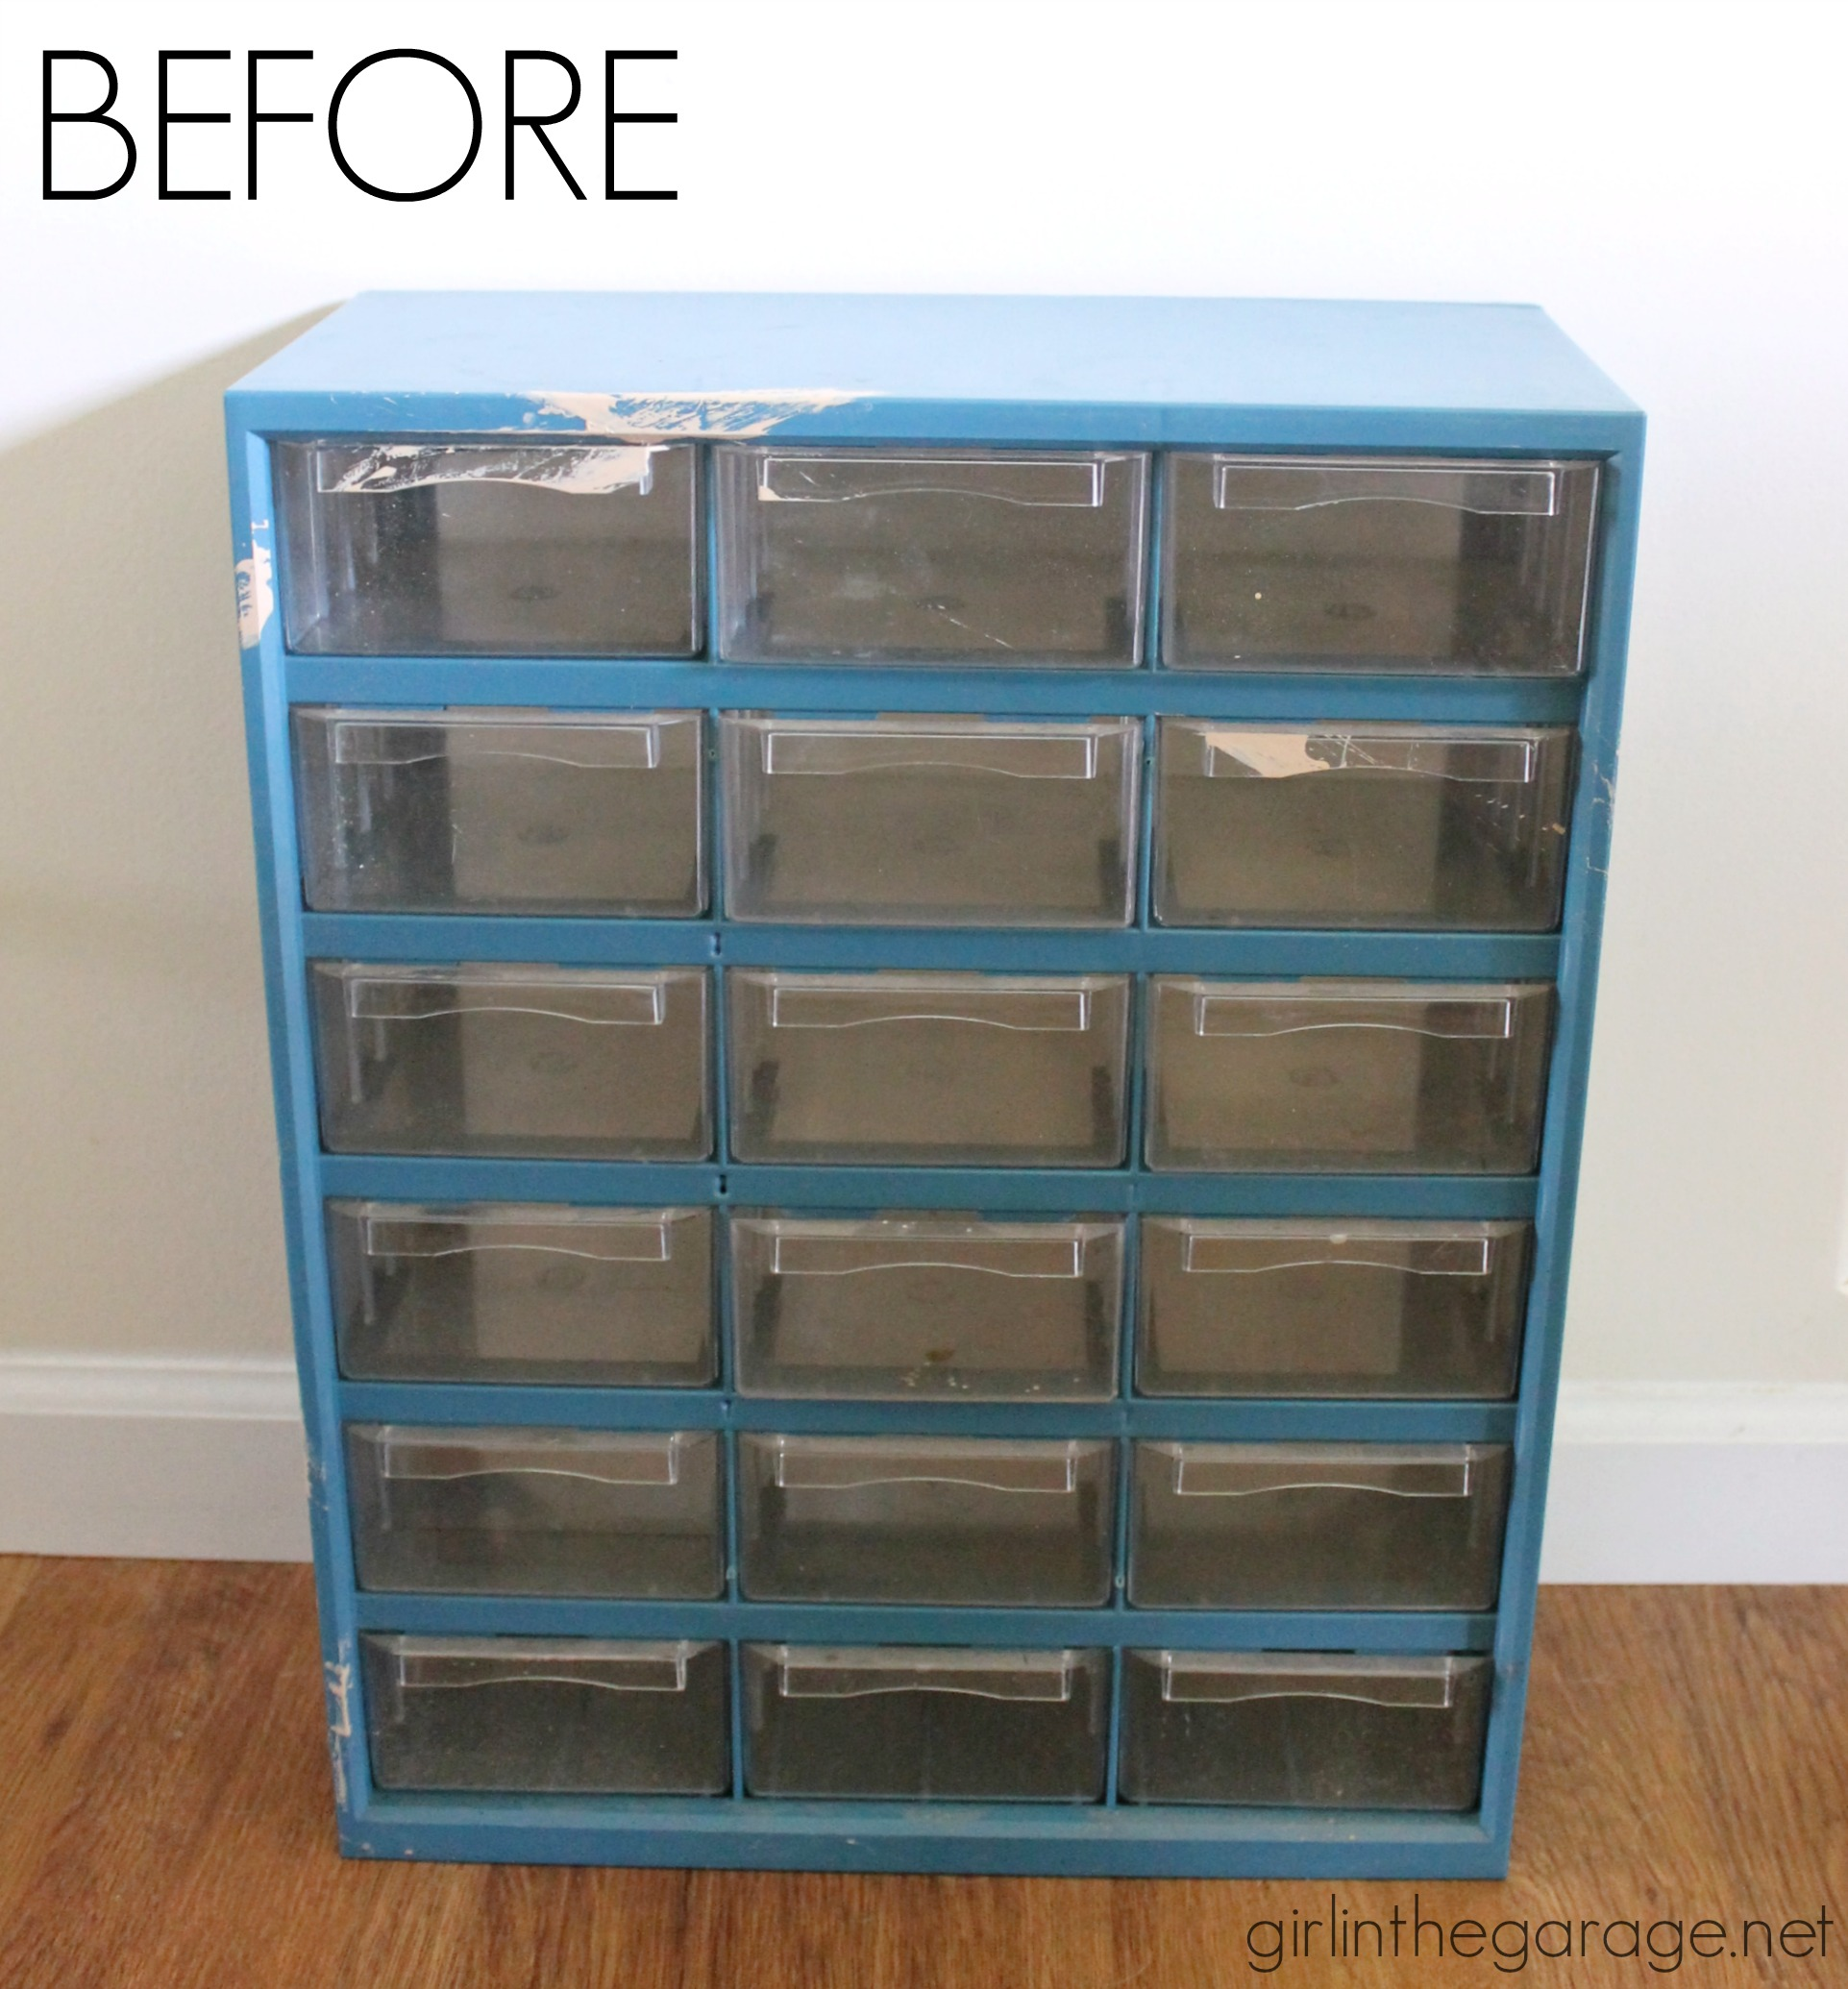 Bon Storage Organizer Makeover   Trash To Treasure   Girl In The Garage